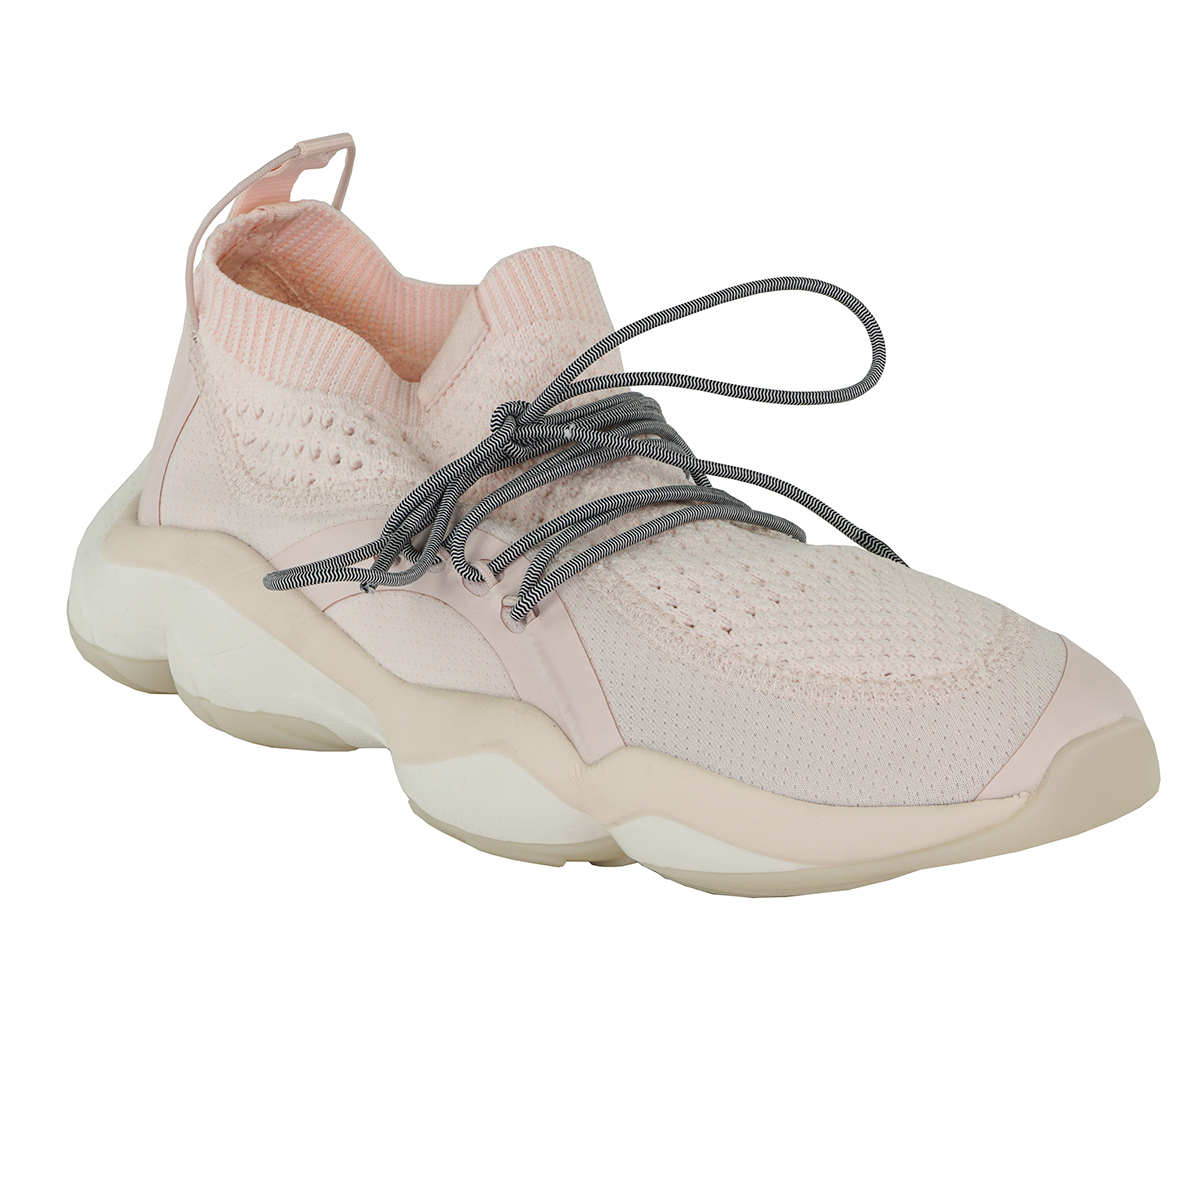 29a7a29a2f9 Details about Reebok Men s DMX Fusion CI Shoes Pale Pink White Chalk 10.5